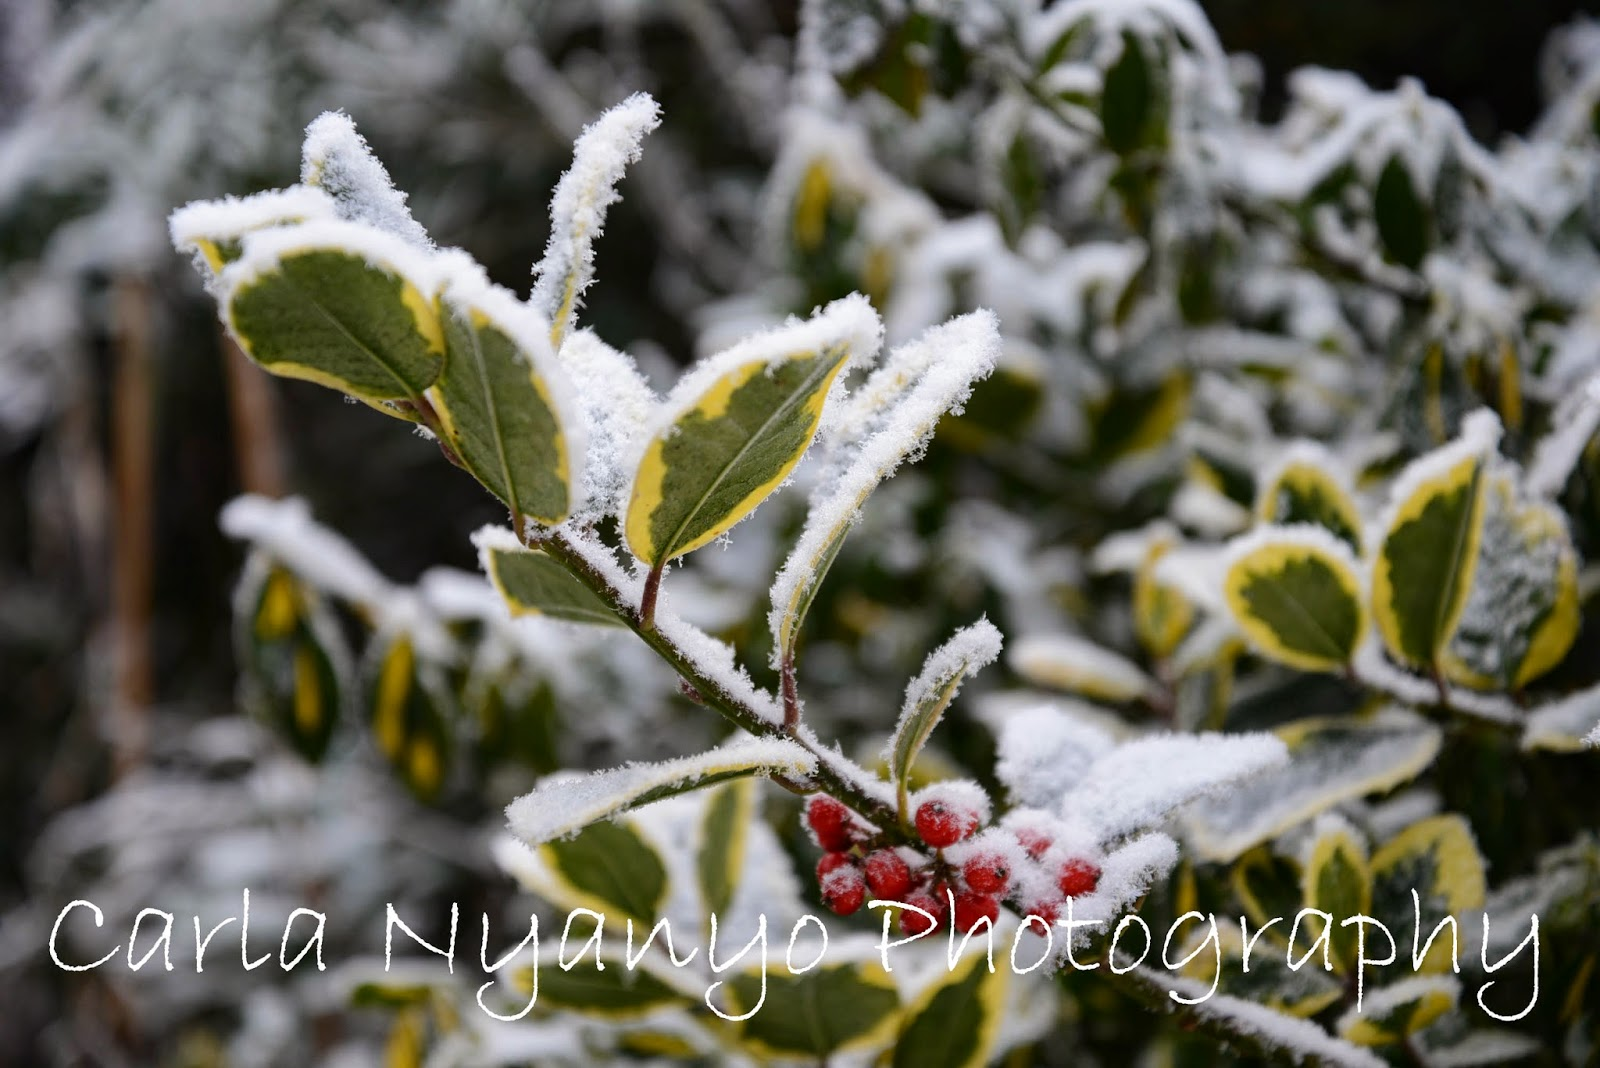 frosty leaves and berries